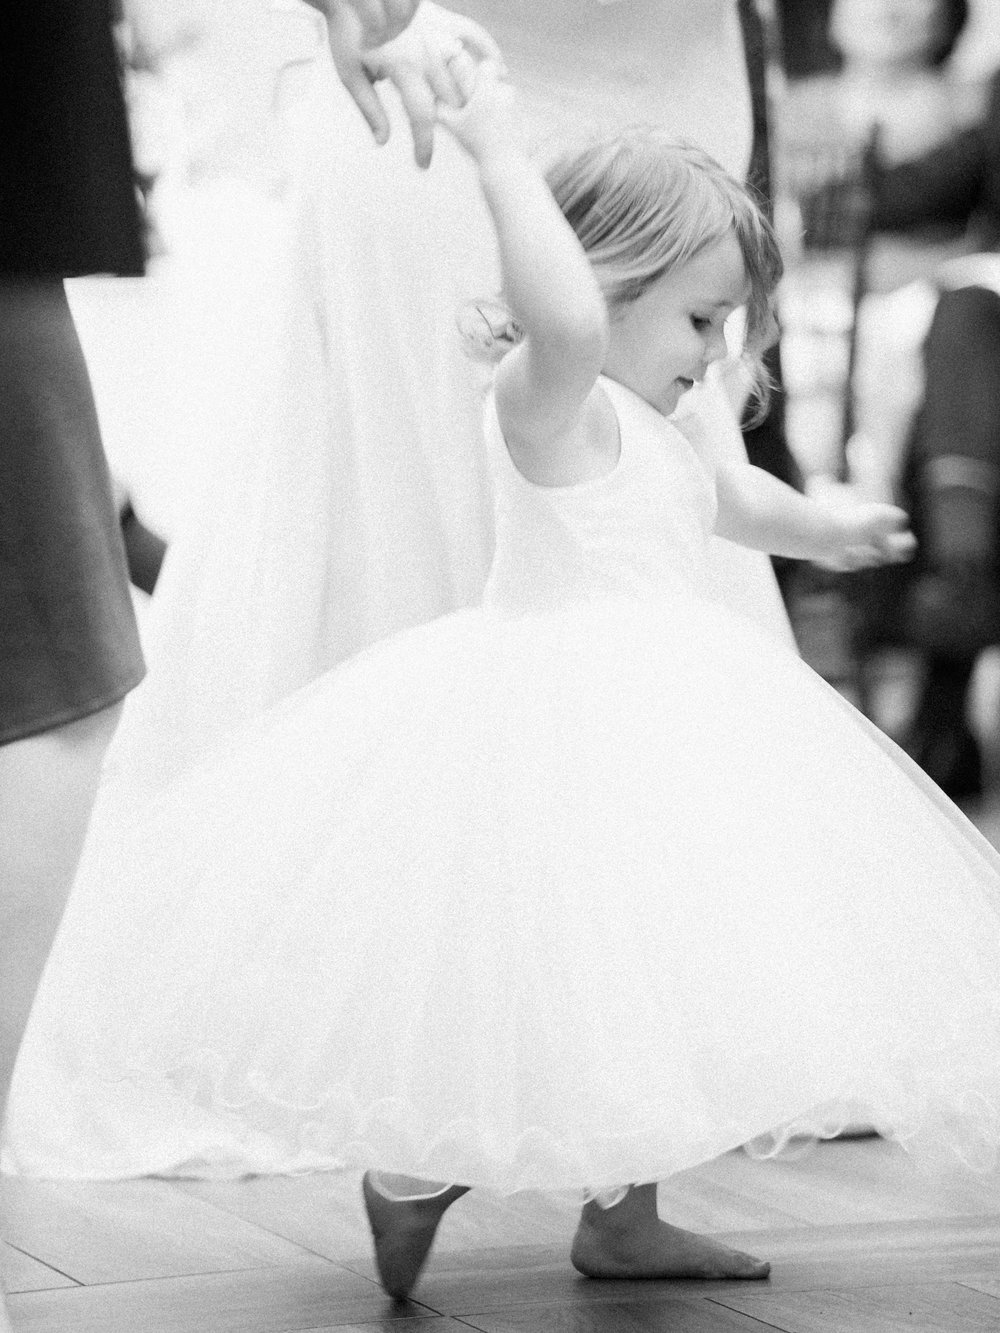 Flower girl twirling in a tutu at a wedding